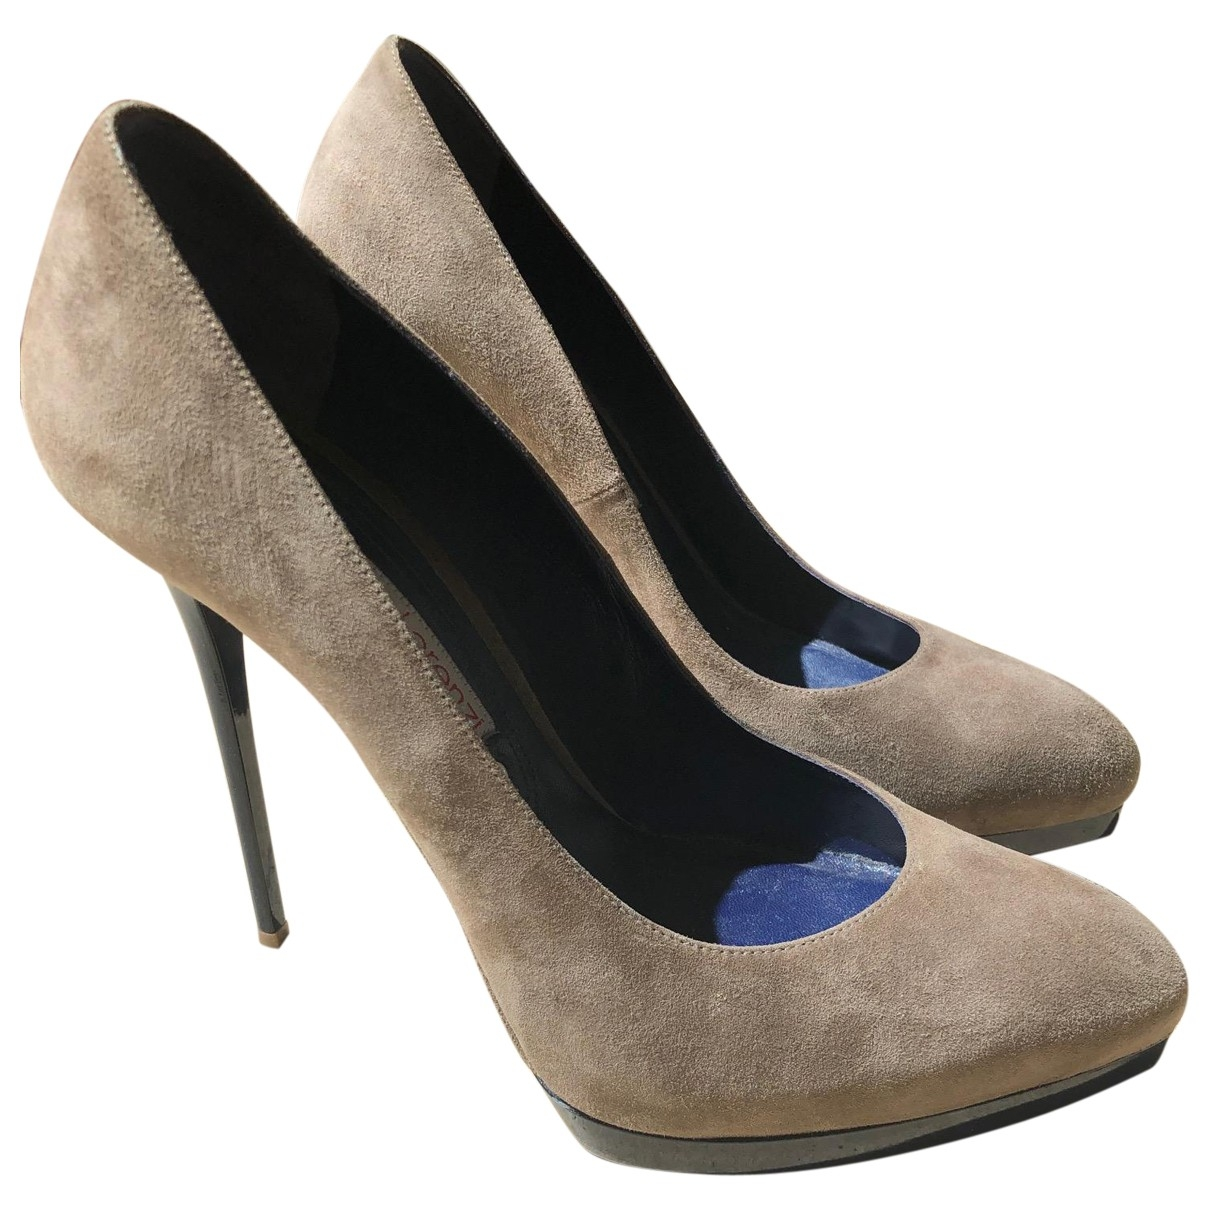 Gianmarco Lorenzi \N Beige Suede Heels for Women 40.5 EU